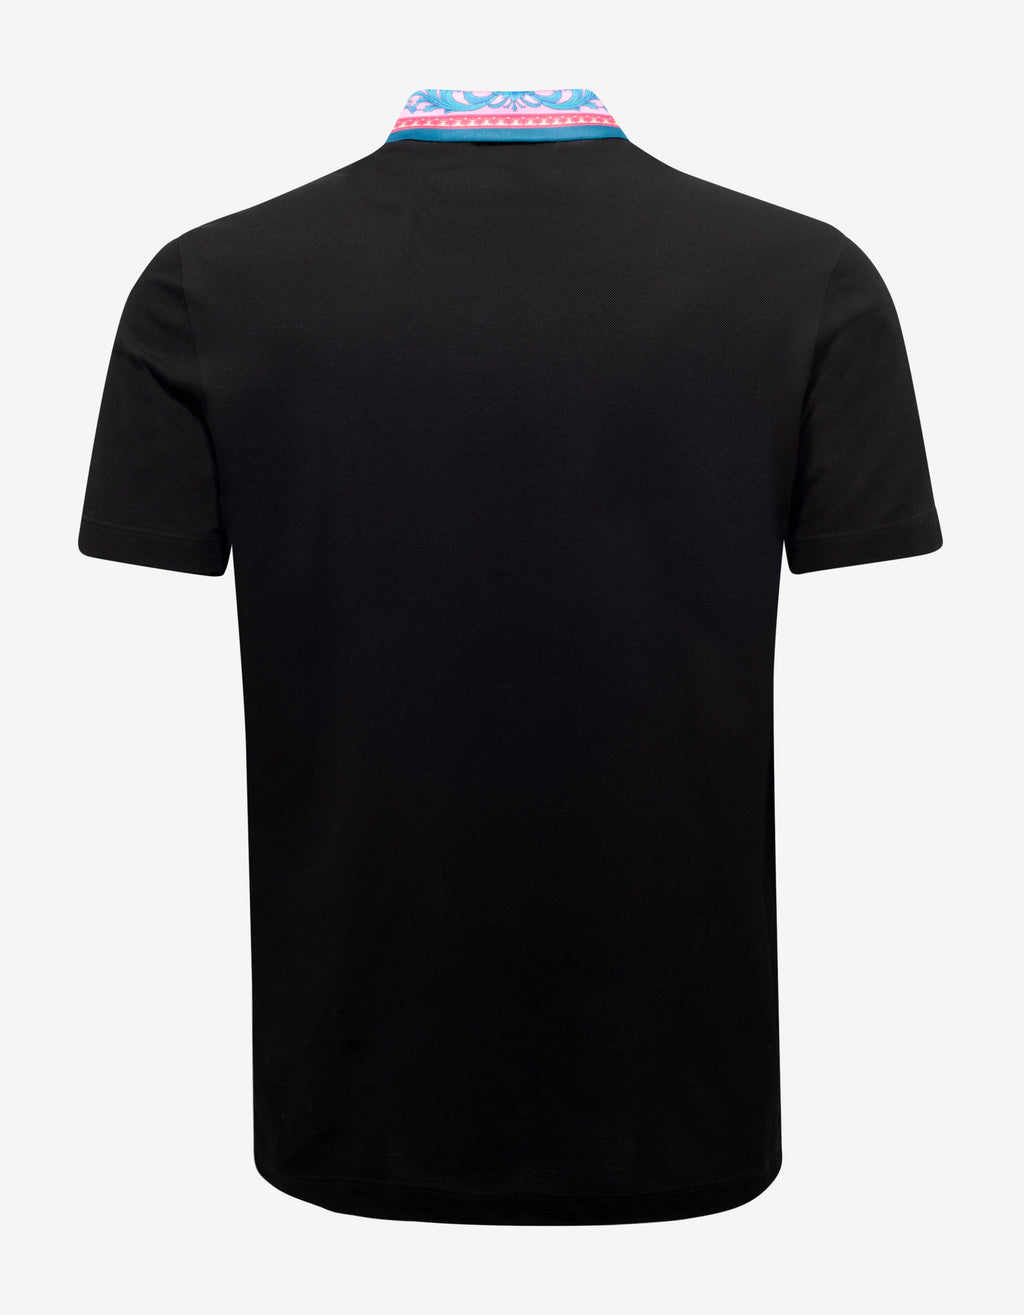 Black Barocco Collar Polo T-Shirt